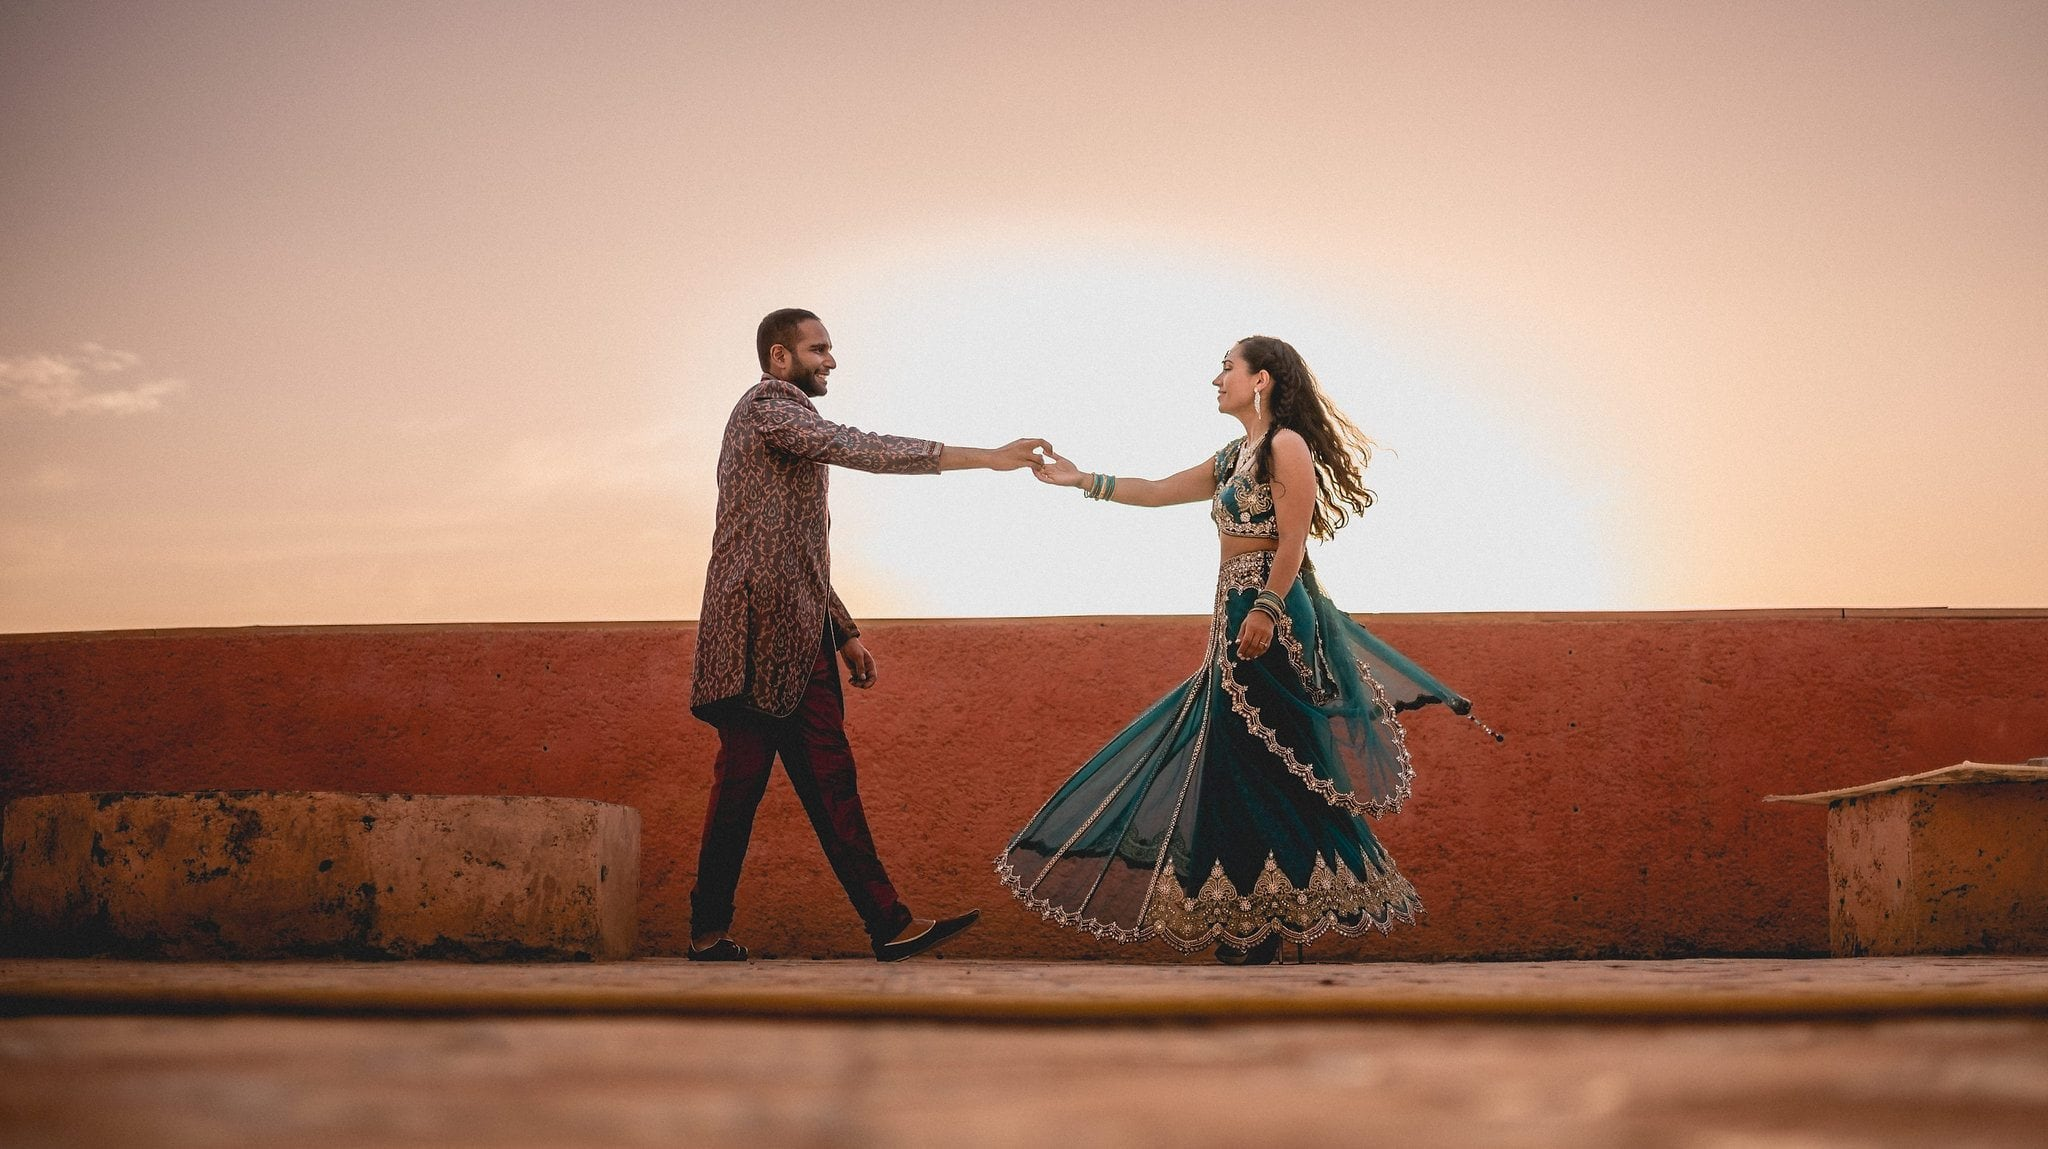 Indian couple dance on a rooftop as the sun sets in Marrakech